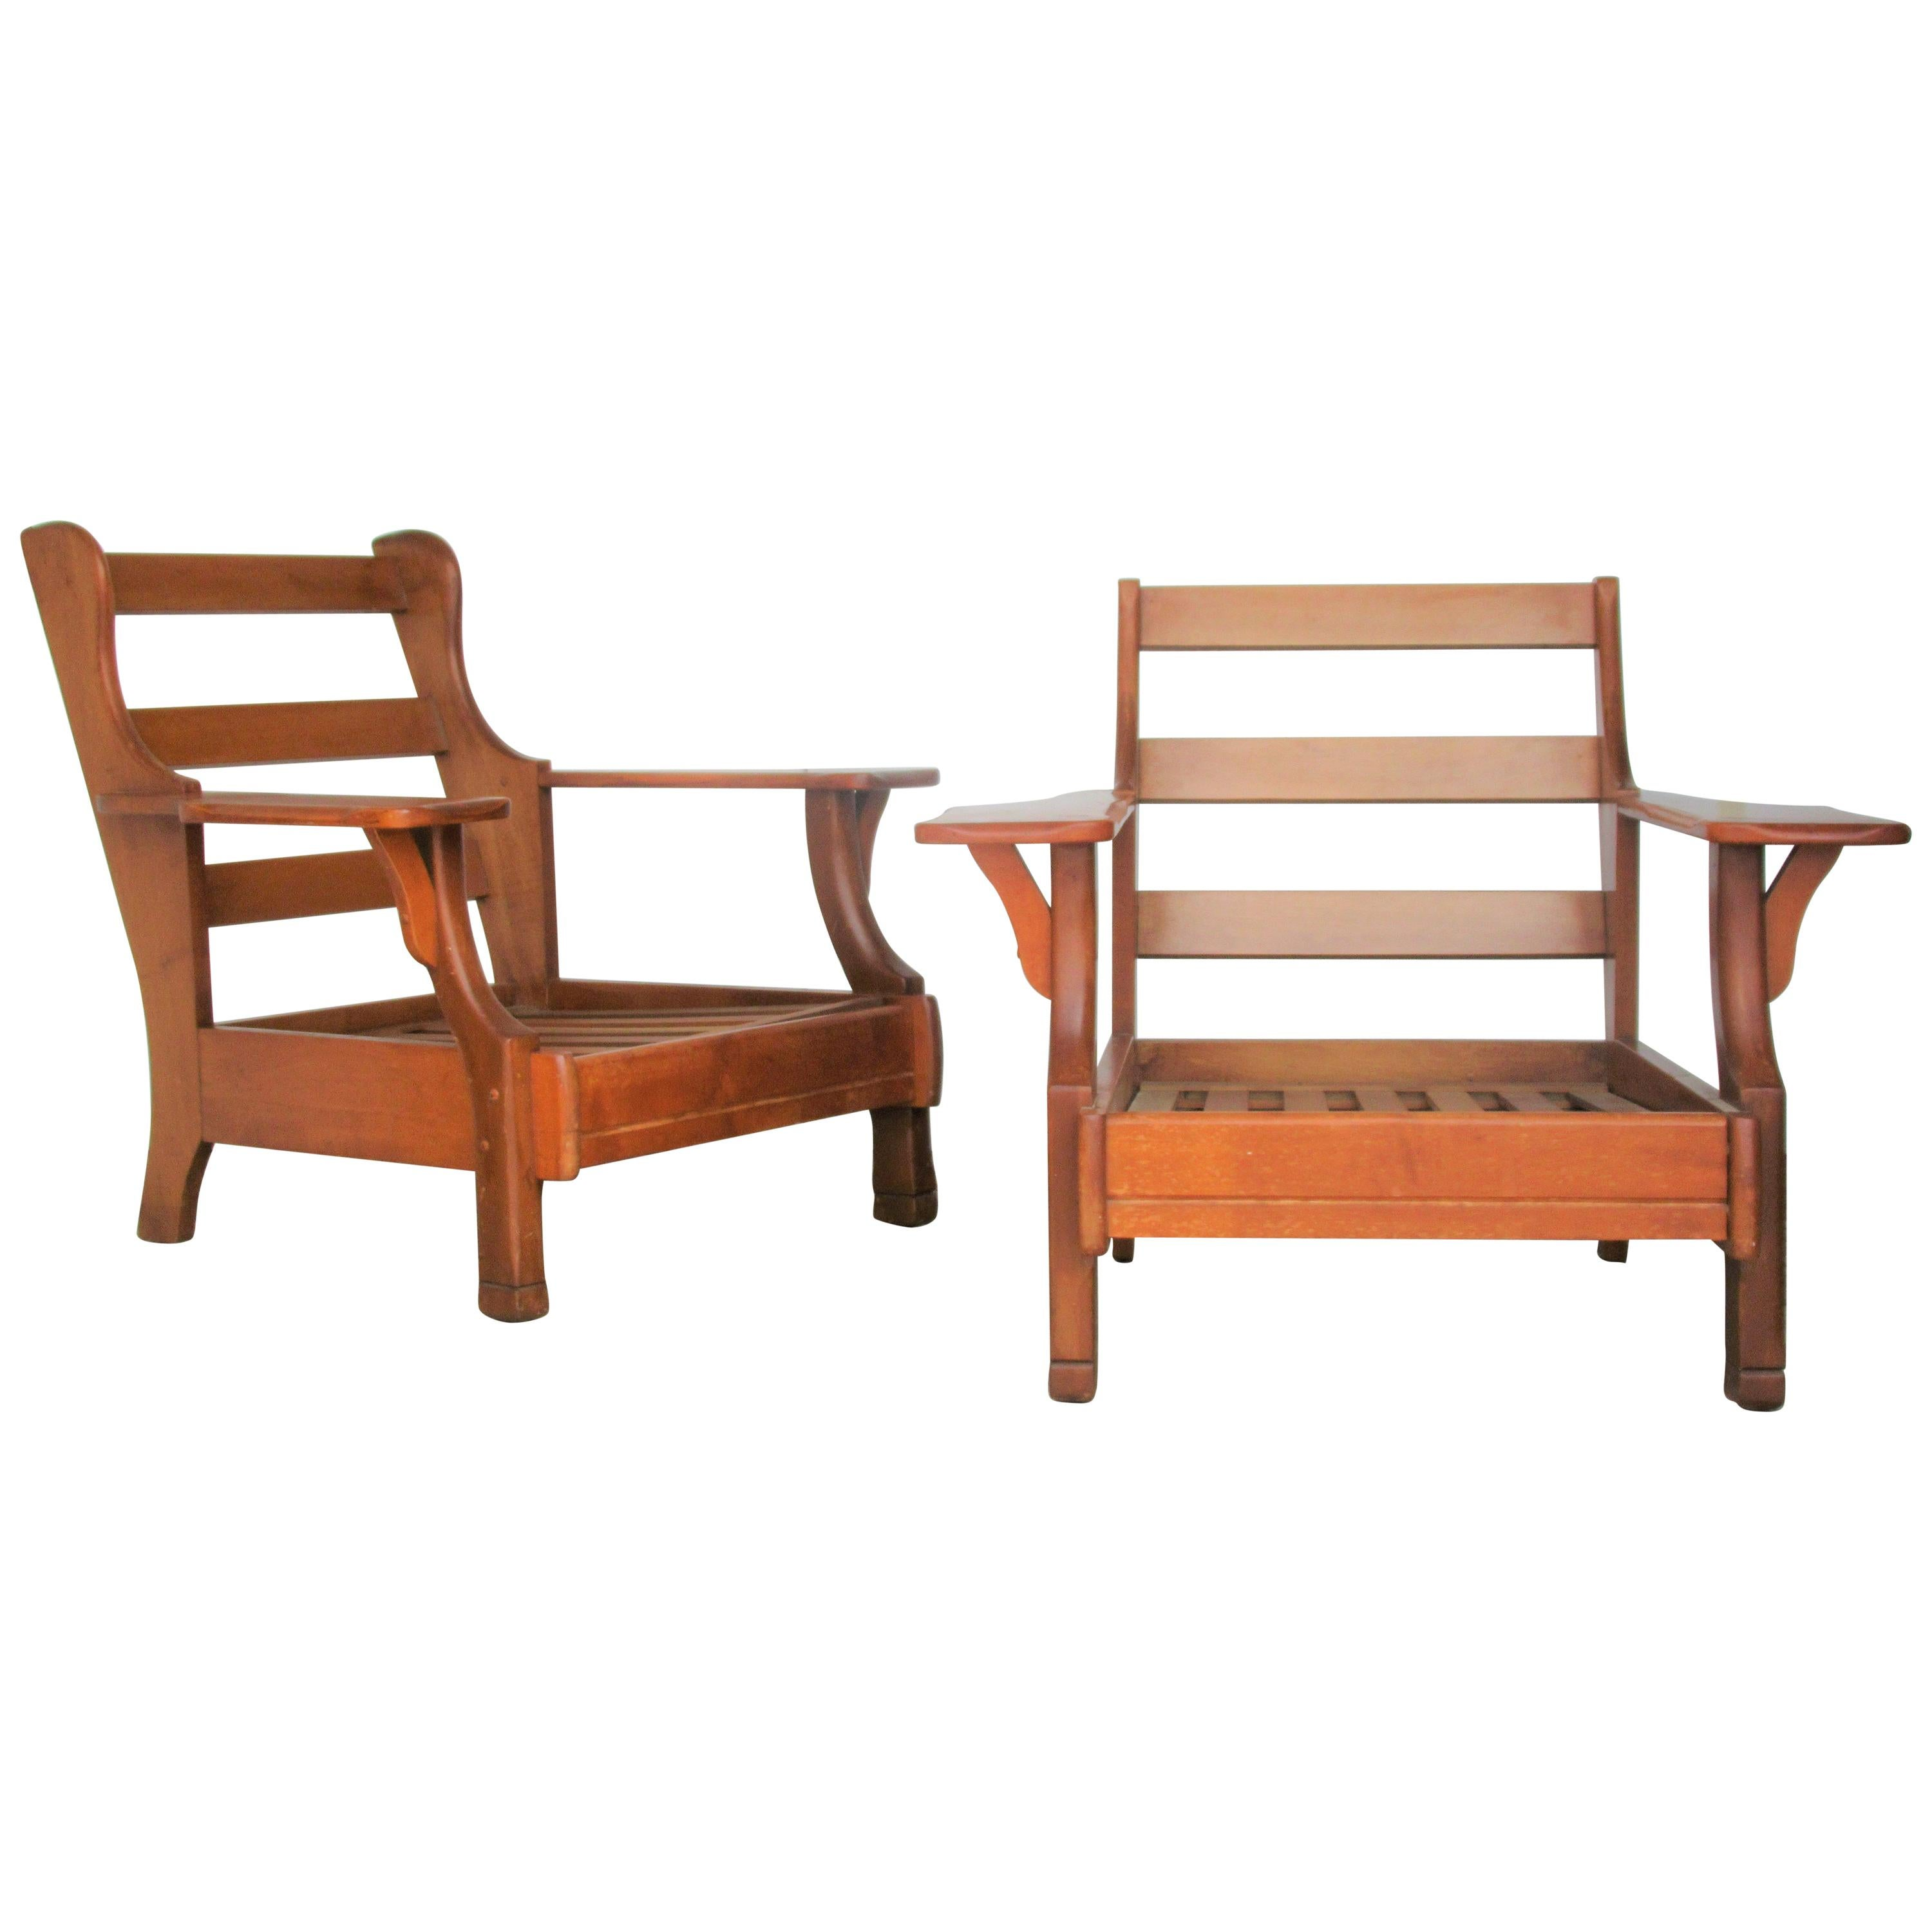 1940s American Rustic Wide Paddle Arm Maple Lounge Chairs